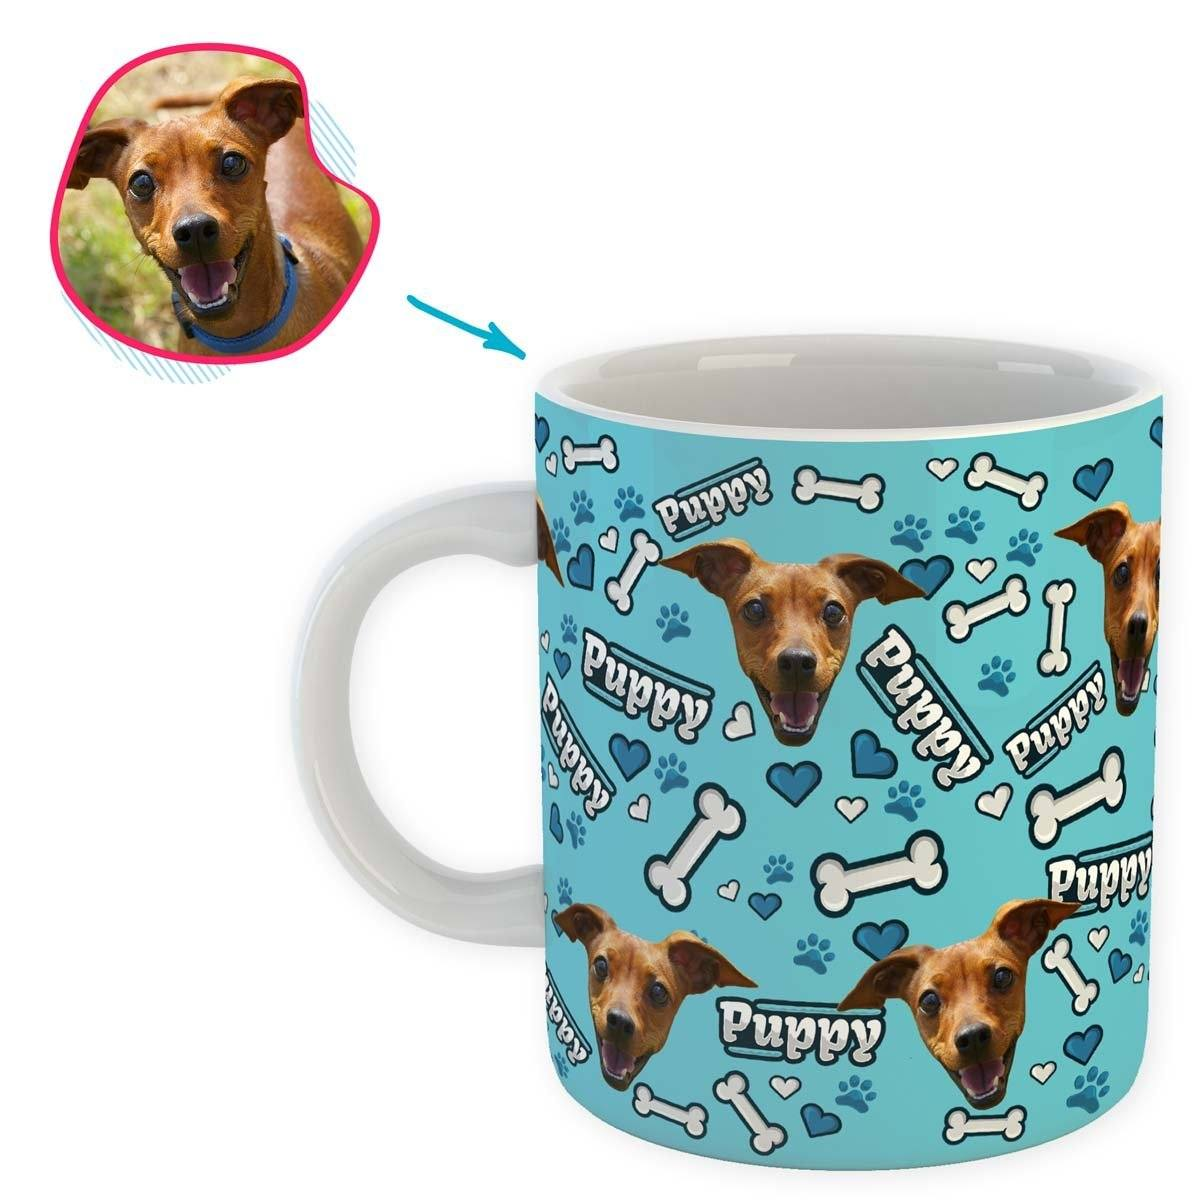 blue Puppy mug personalized with photo of face printed on it